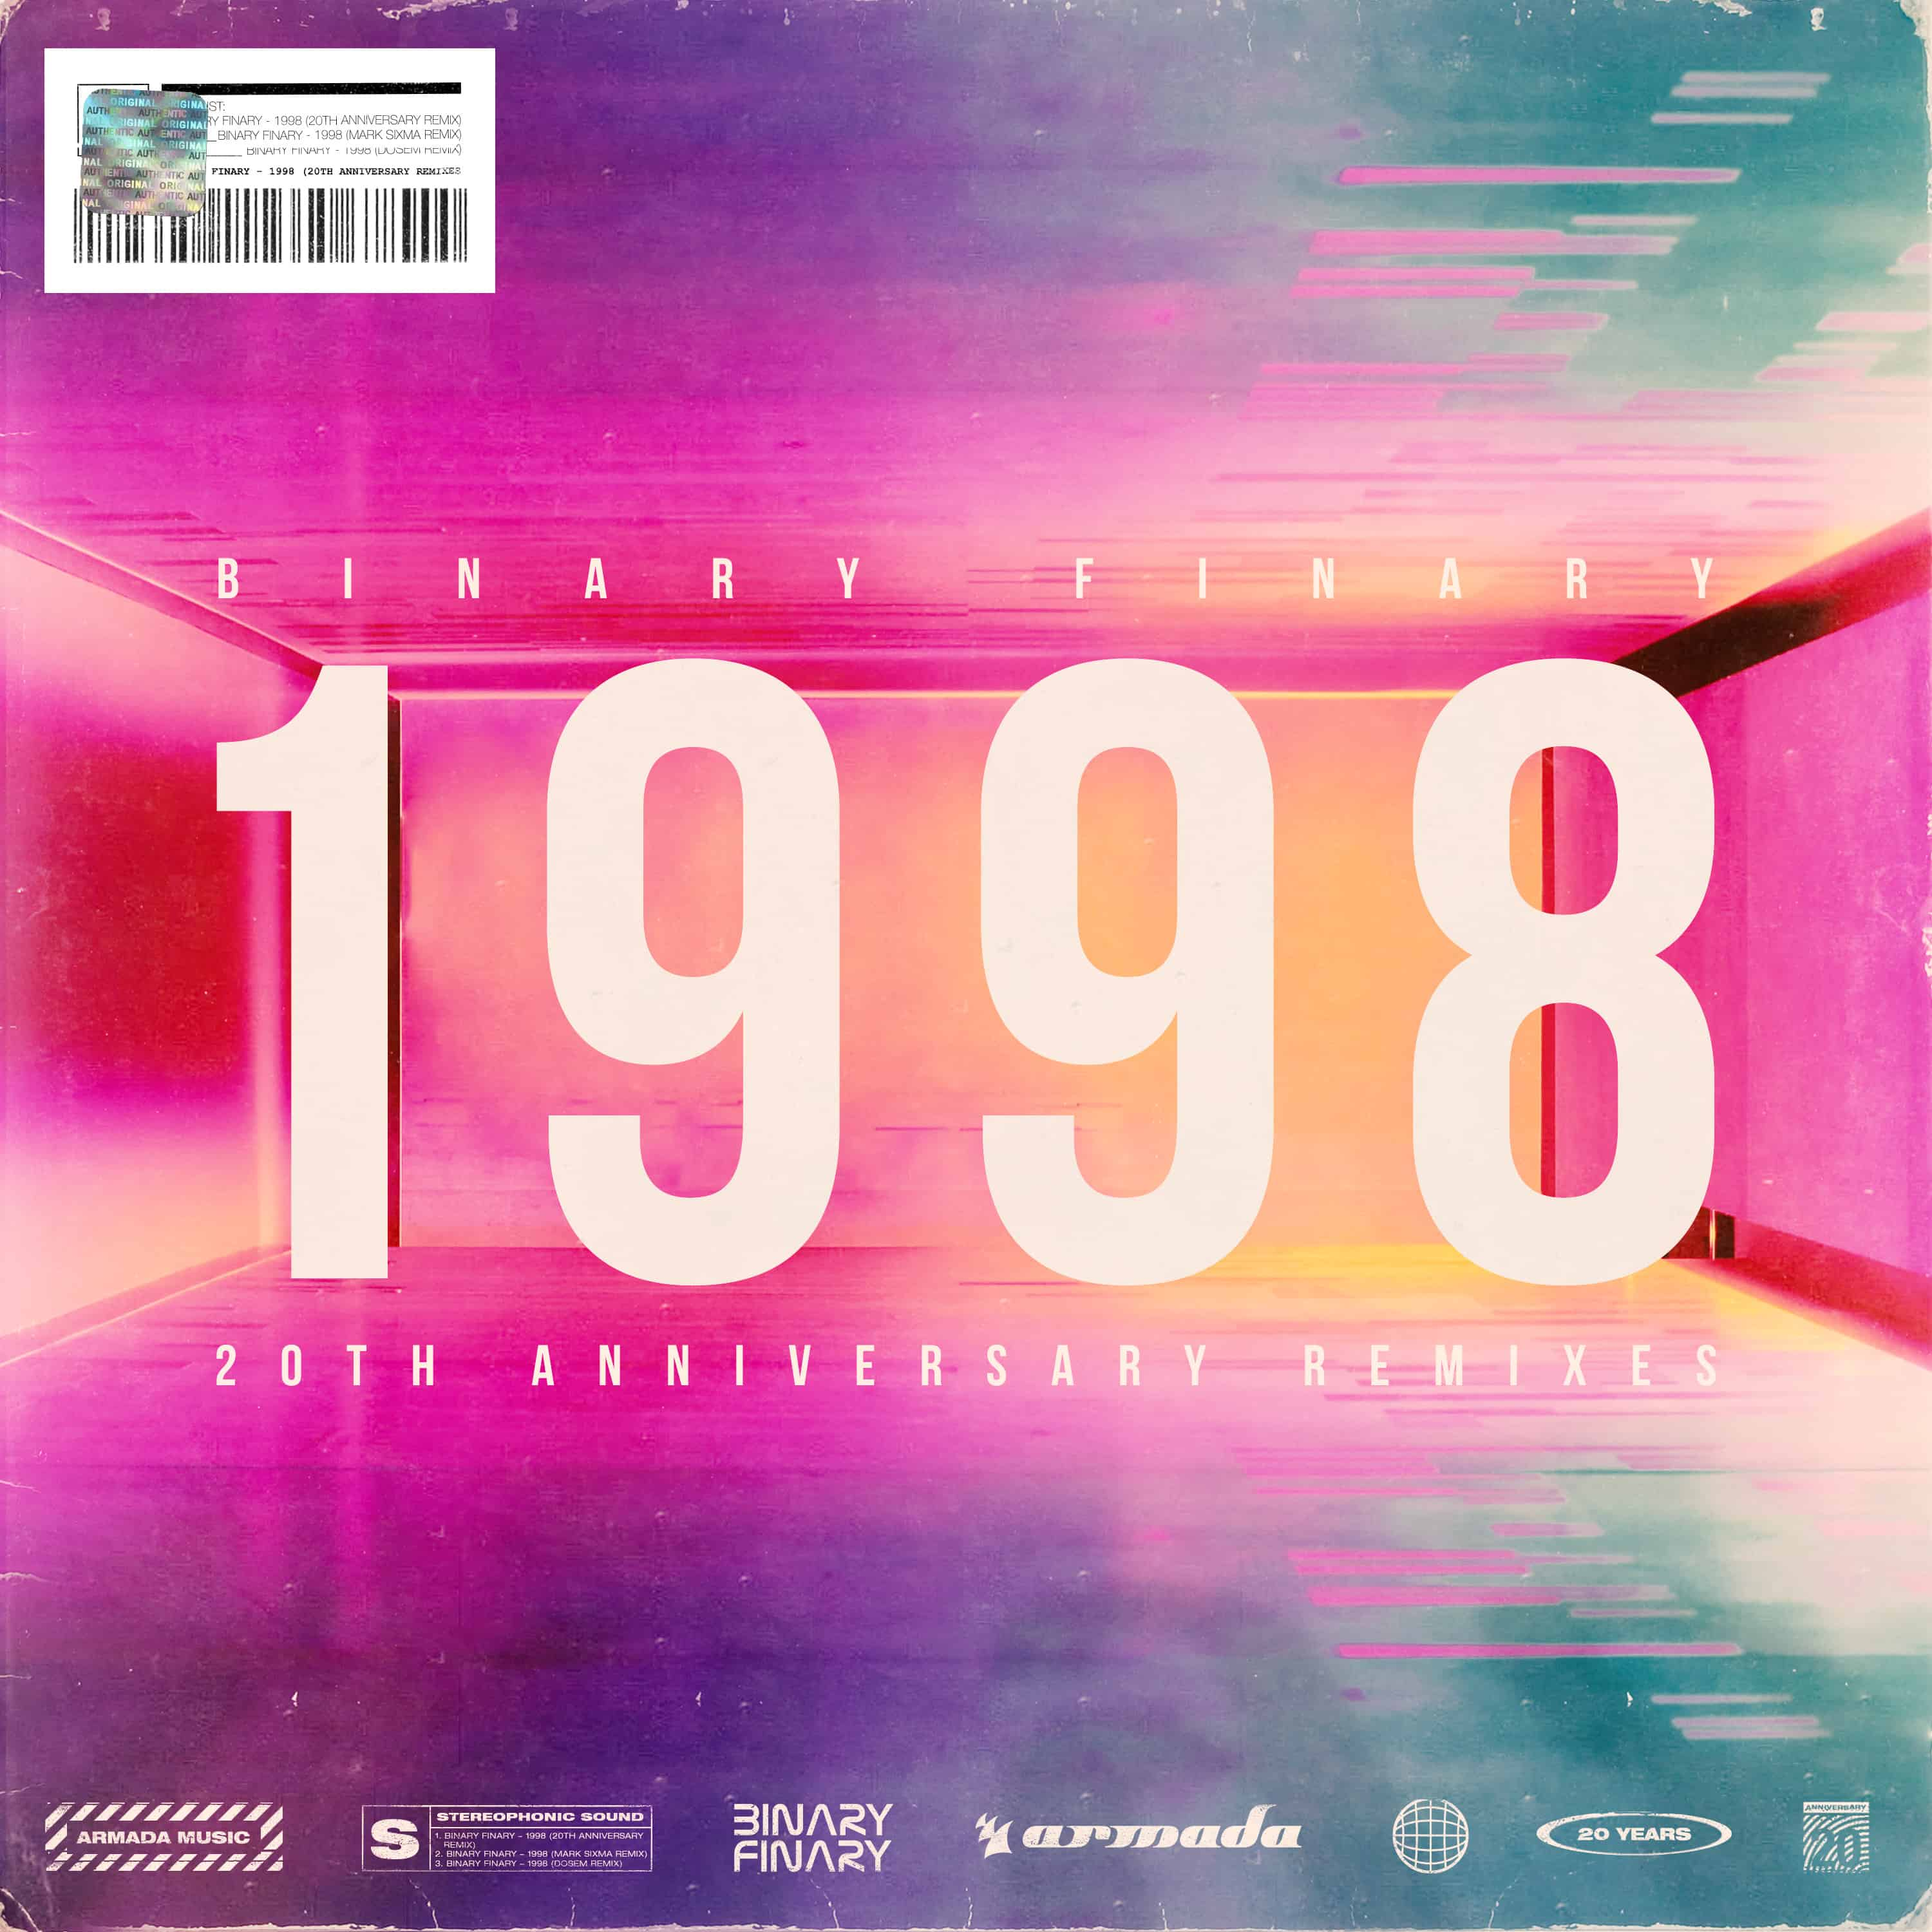 1998 (20th Anniversary Remixes)